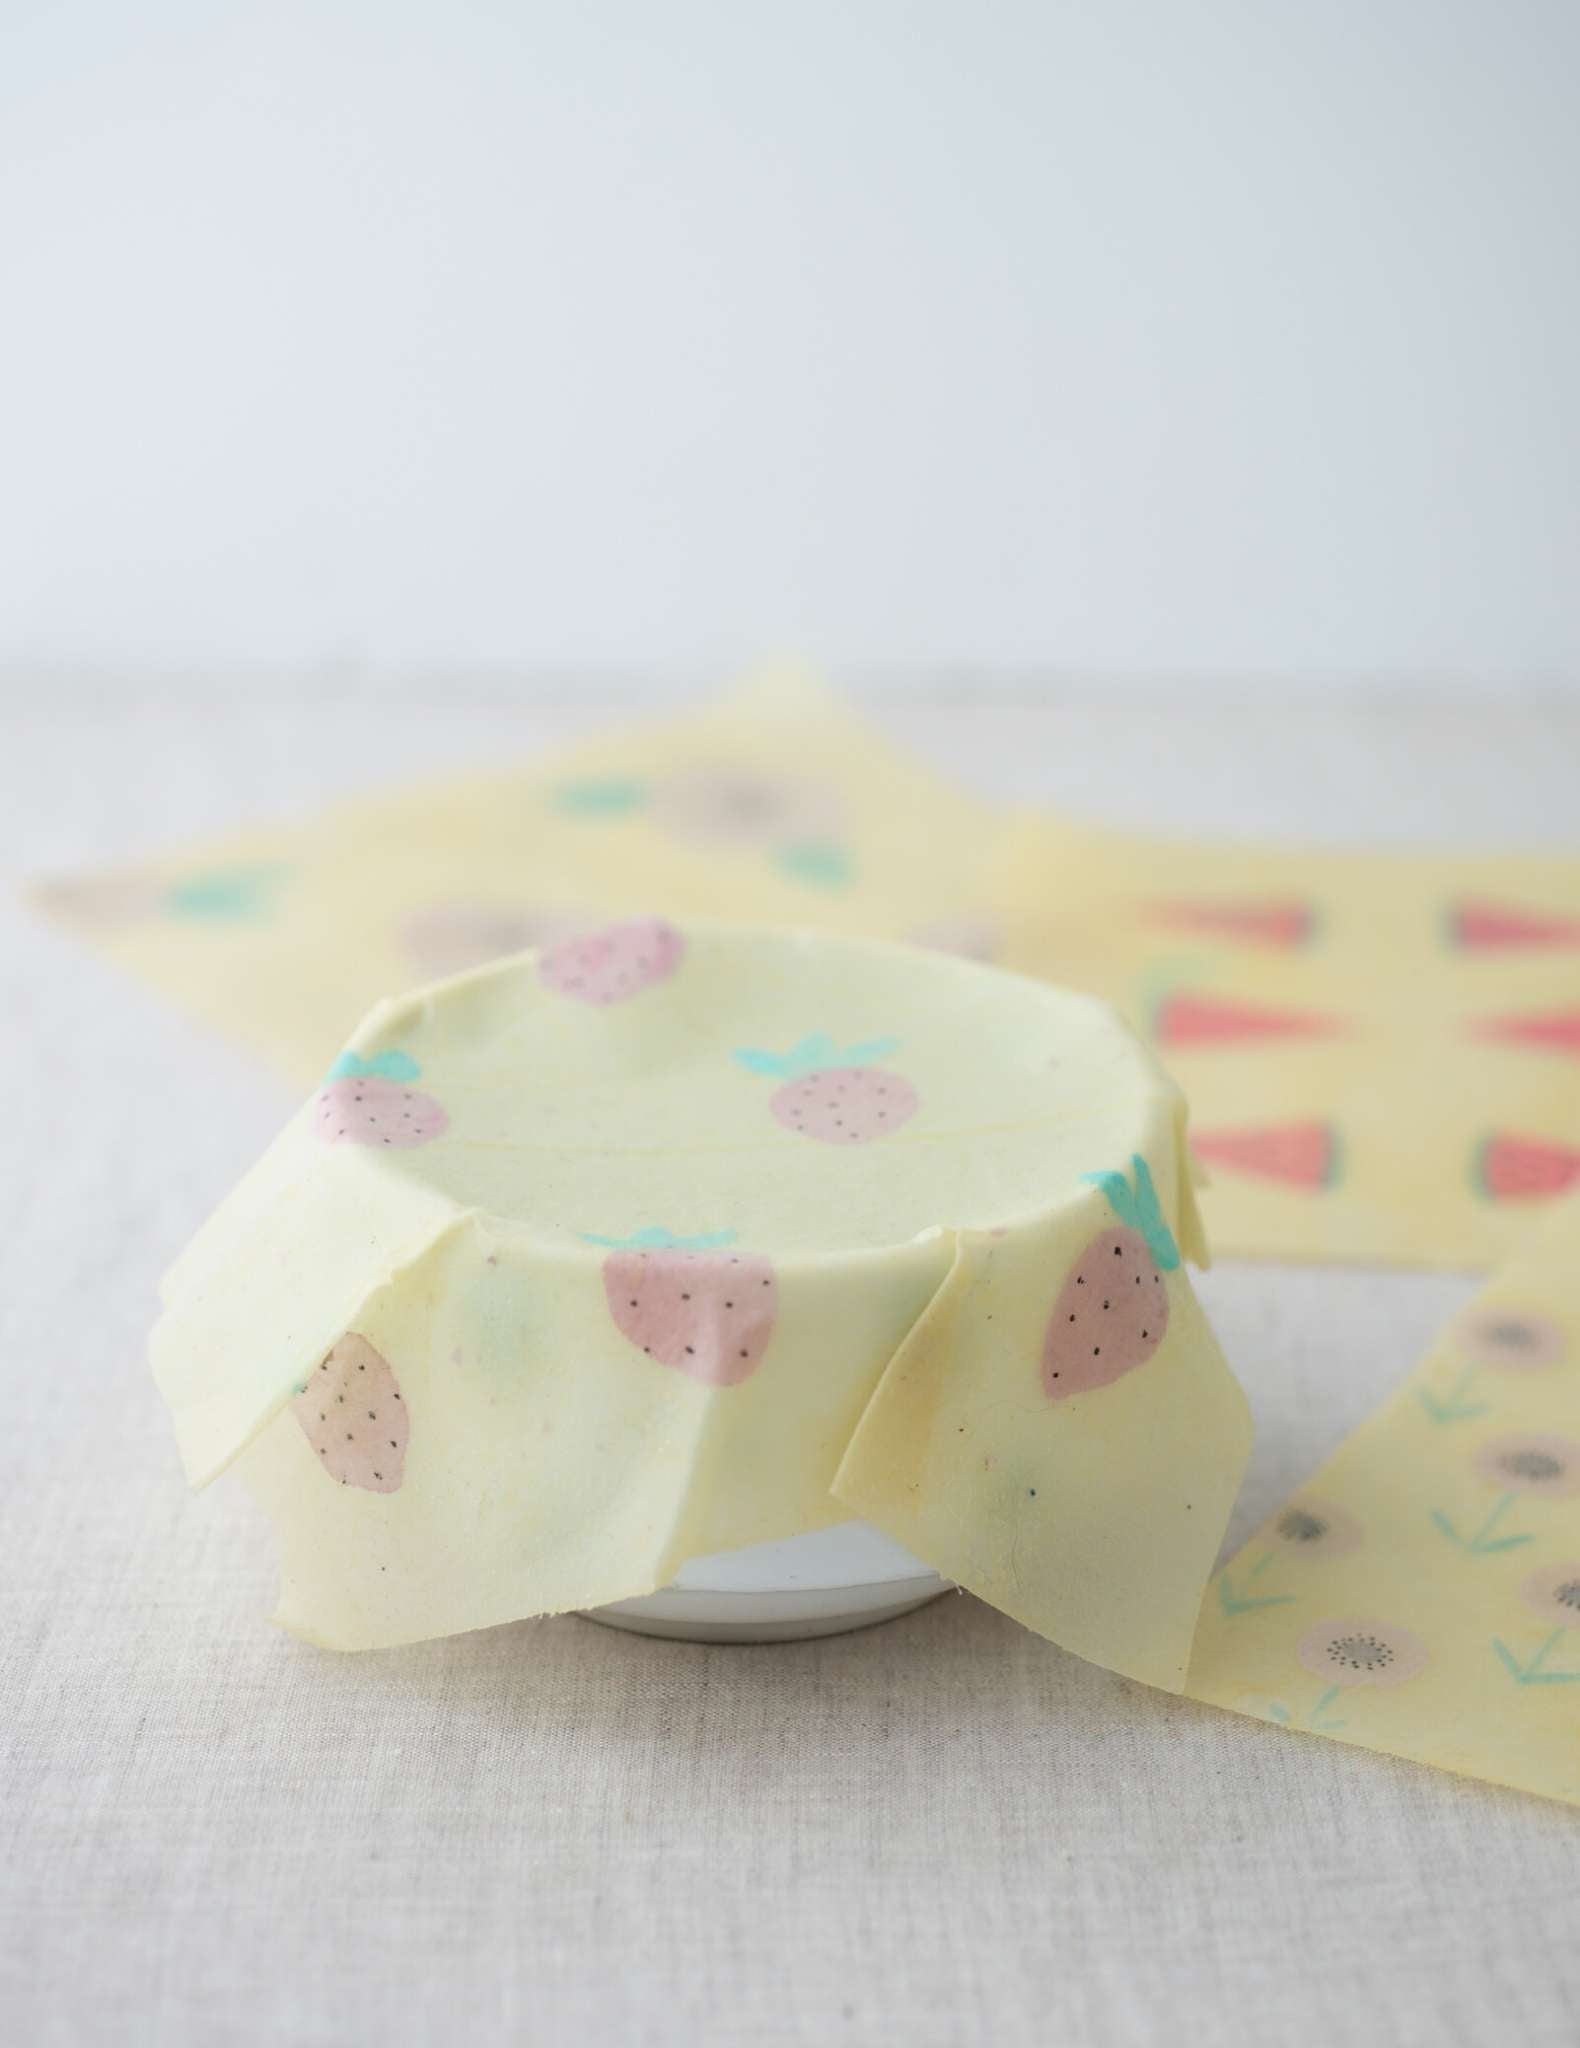 a white bowl covered in a pale food wrap that clings to the top edge of the bowl. The food wrap is handprinted with a strawberry motif and other, unused wraps lay behind.